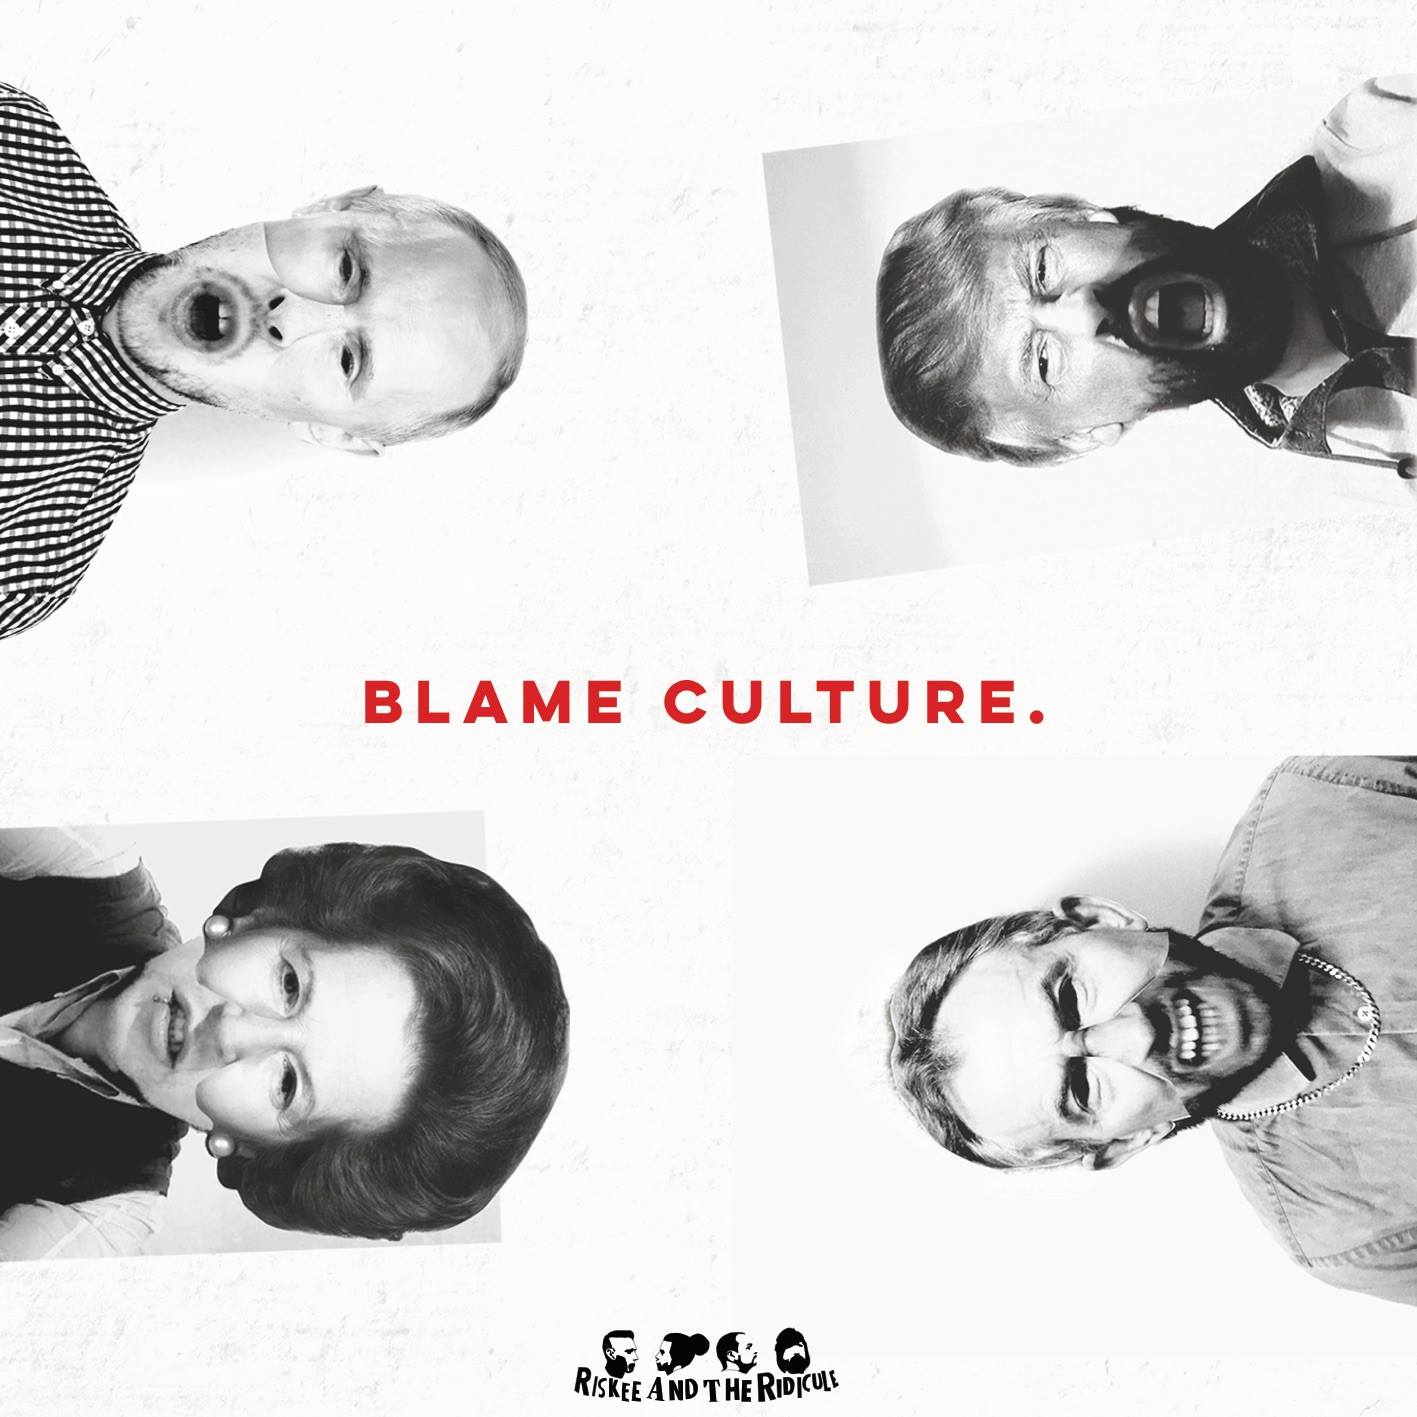 Blame Culture by Riskee And The Ridicule